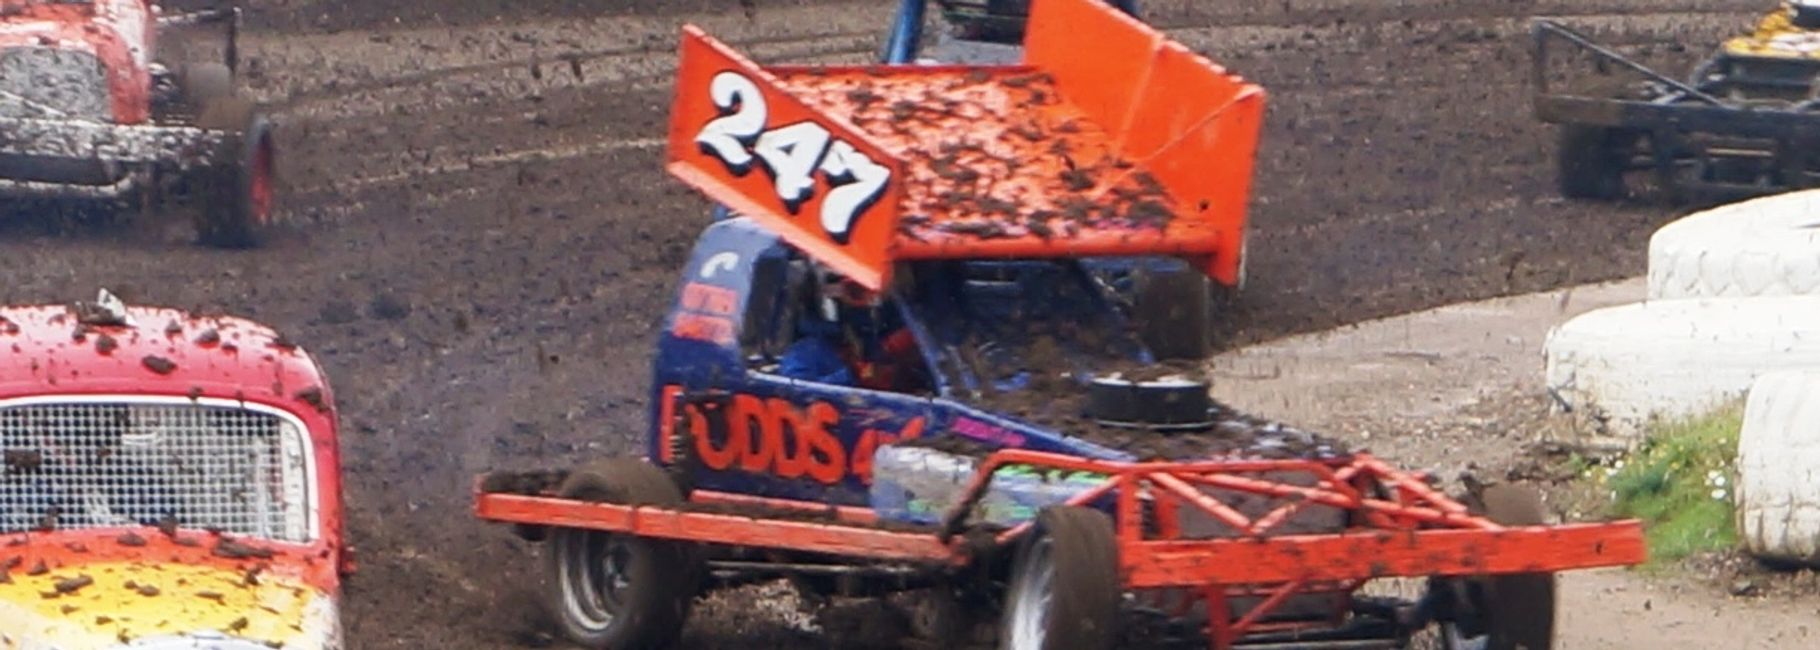 Brisca heritage and V8 tour cars racing